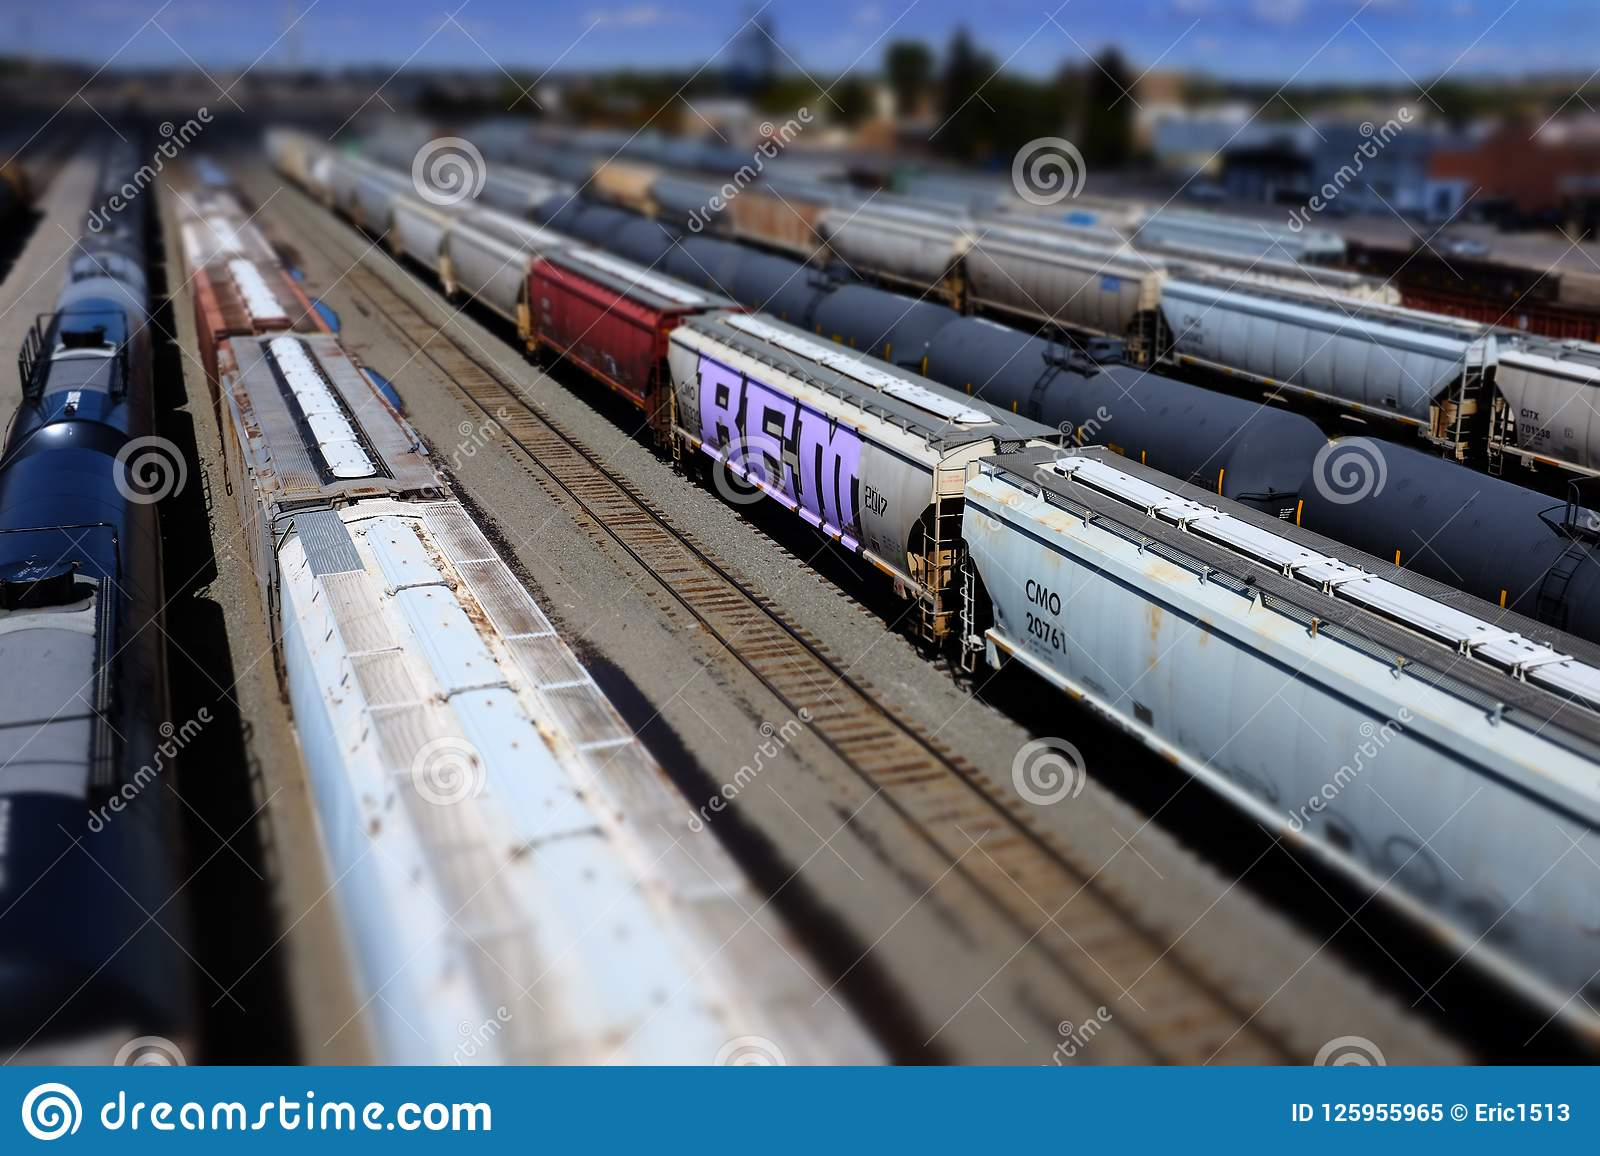 Railroad Tracks And Trains Cars In Miniature Mode Models